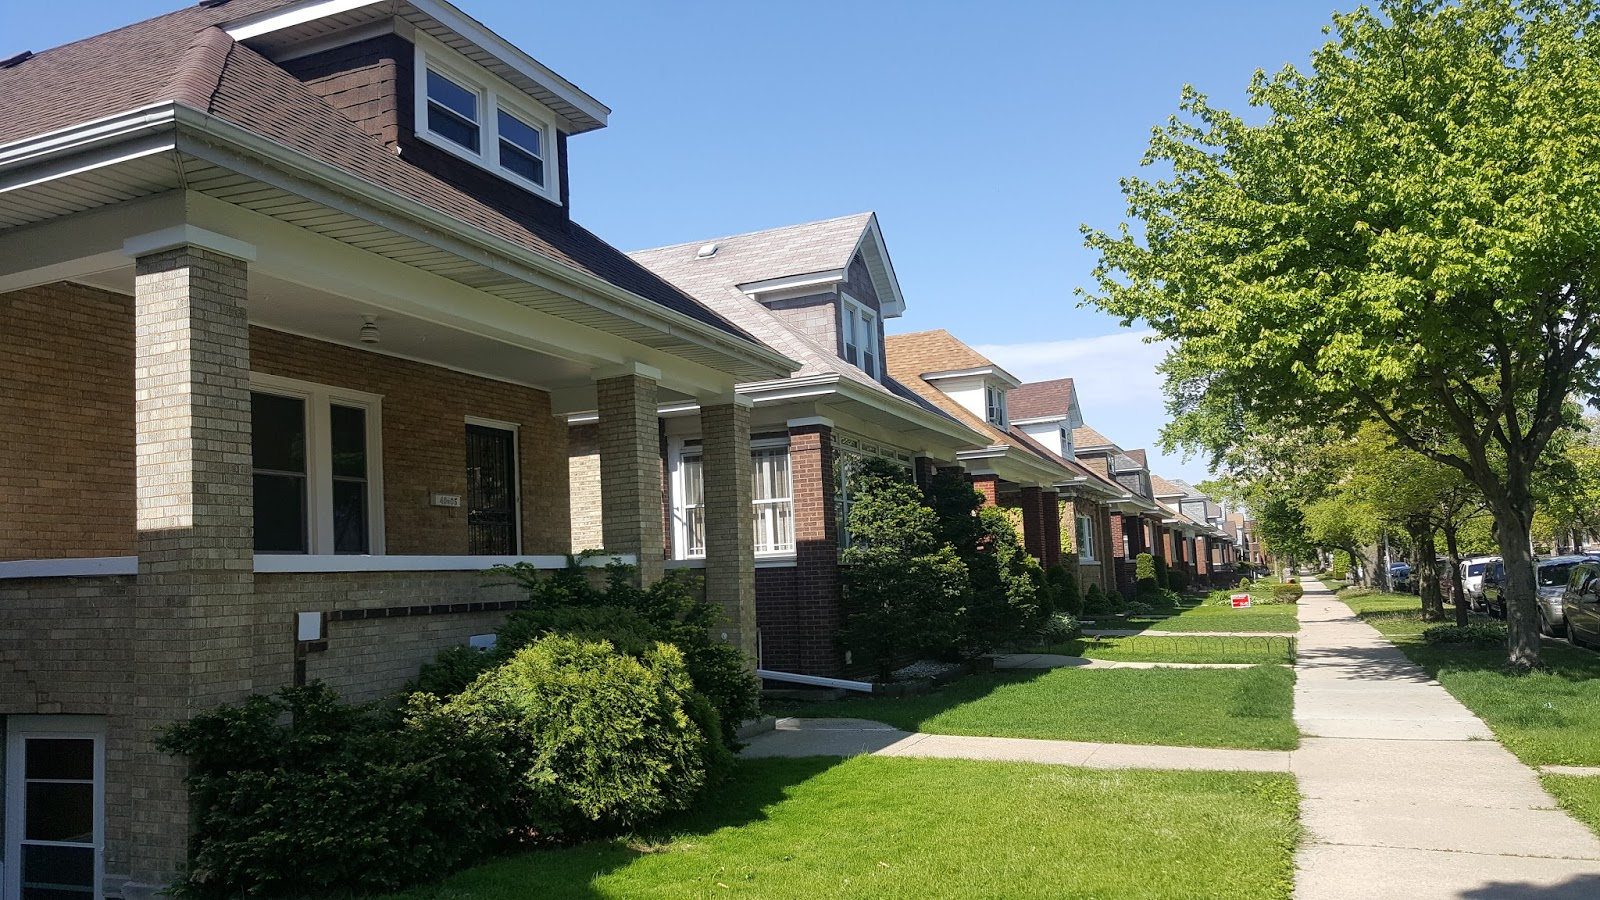 The Chicago Real Estate Local: Belmont Cragin Chicago home sales see ...